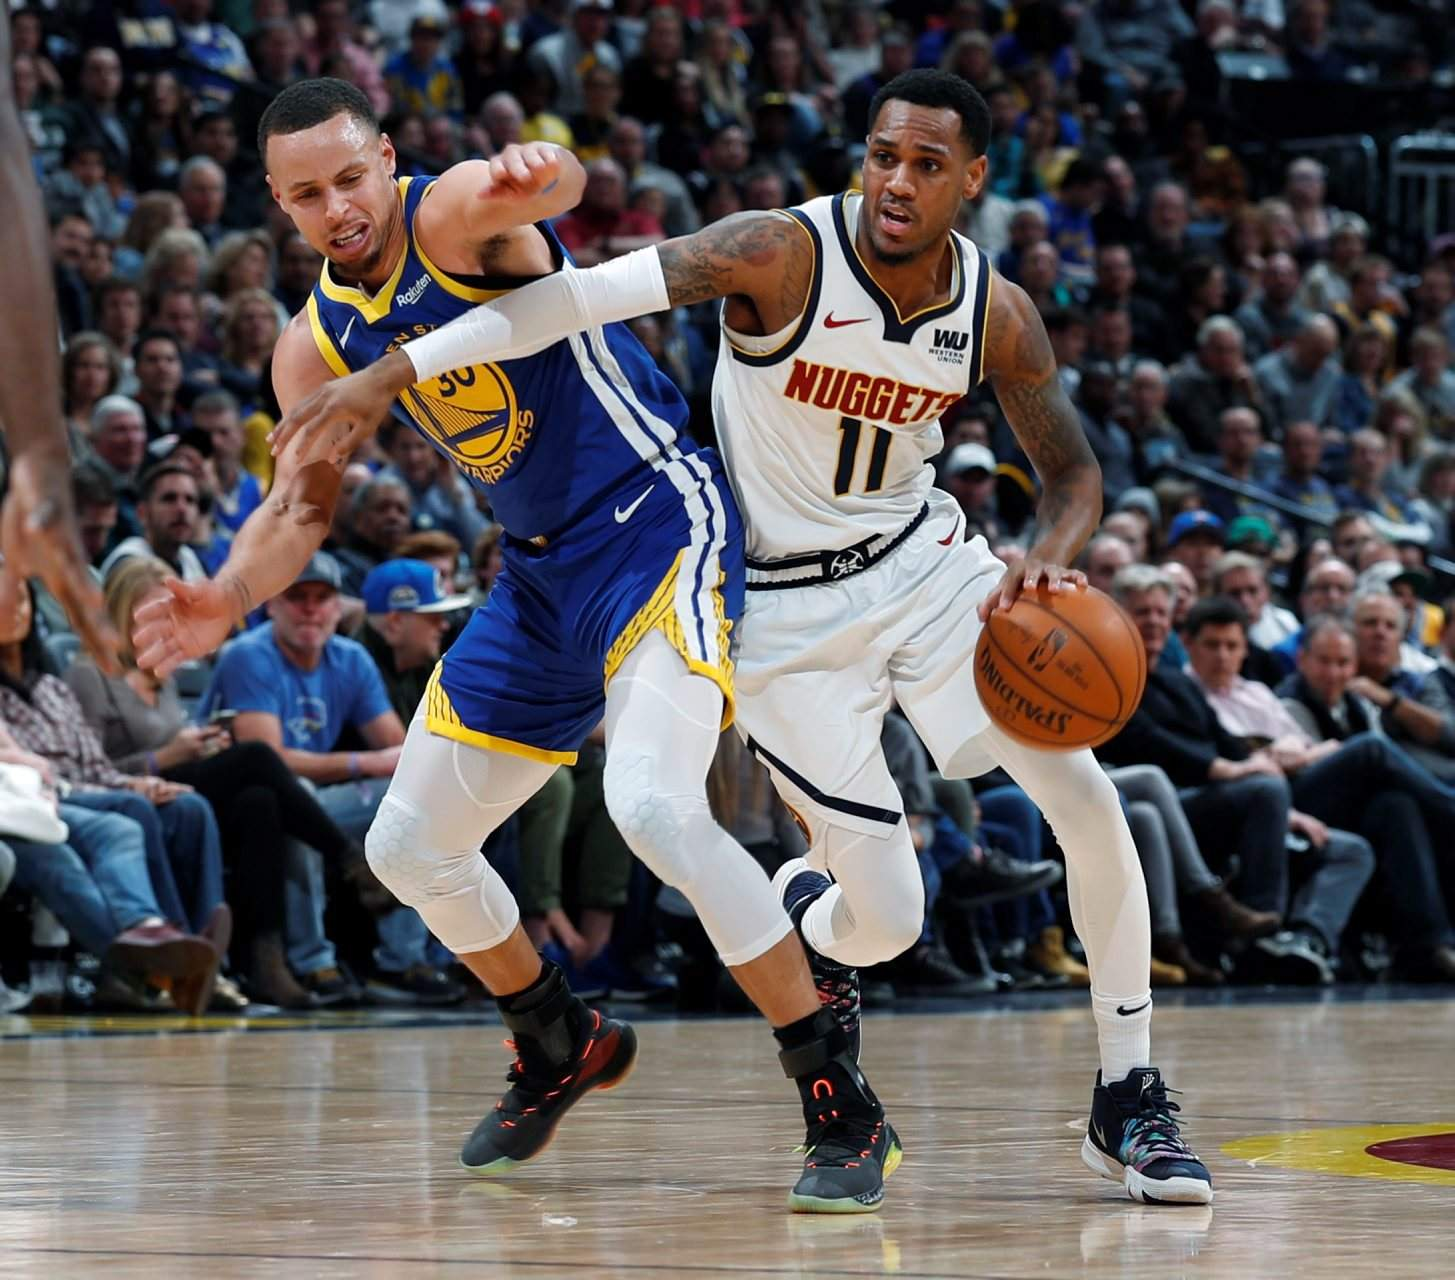 59524883a Denver Nuggets guard Monte Morris drives past Golden State Warriors guard  Stephen Curry in the second half of last week s game in Denver.